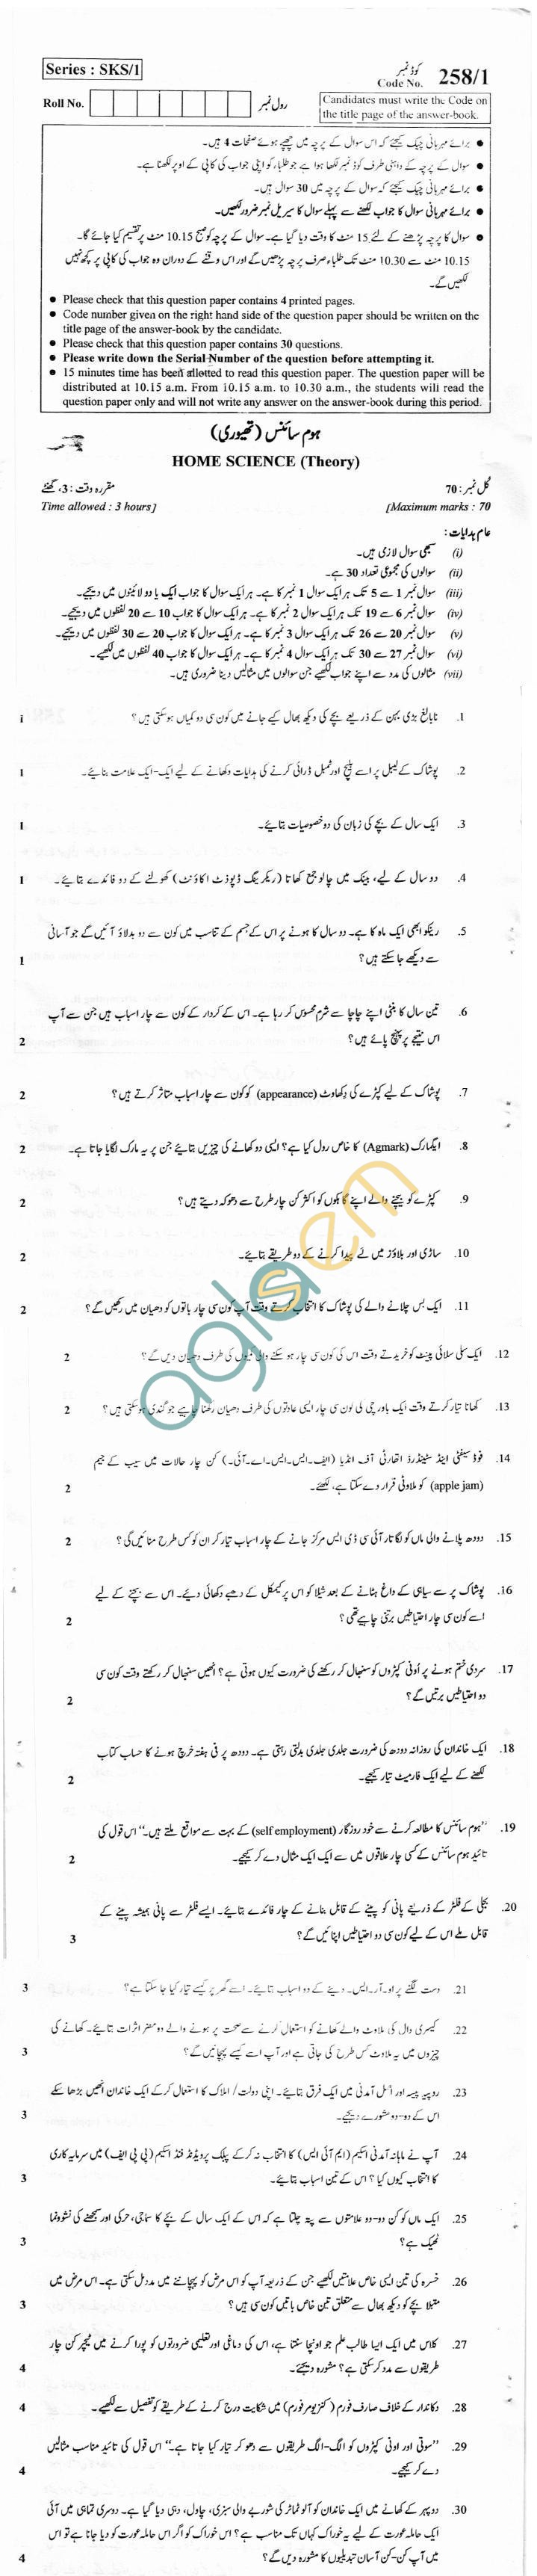 CBSE Board Exam 2013 Class XII Question Paper - Home Science (Urdu Version)